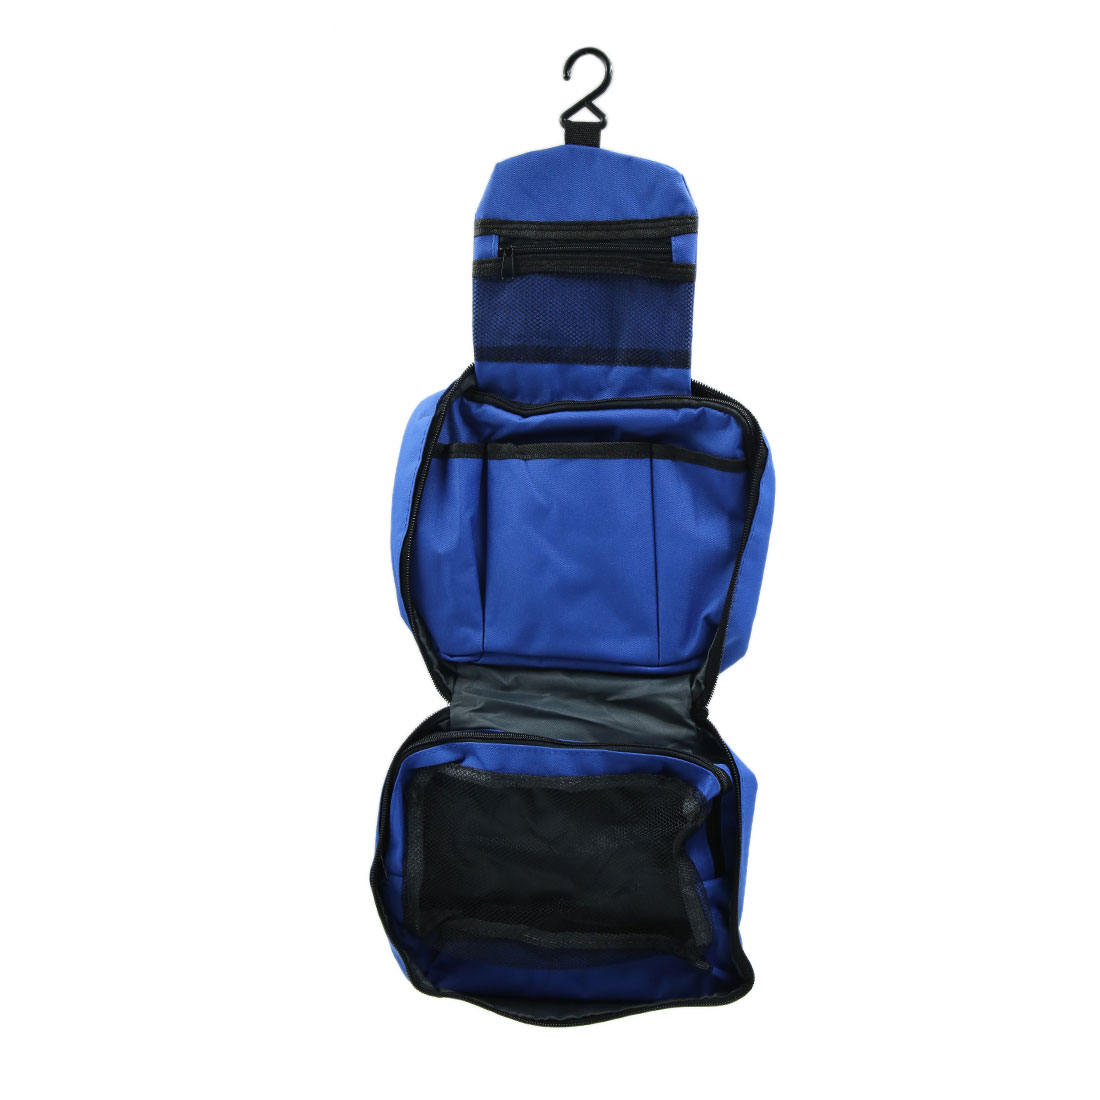 Blue Waterproof Zipper Travel Cosmetic Toiletry Bag Storage Organizer Pouch - image 1 of 5